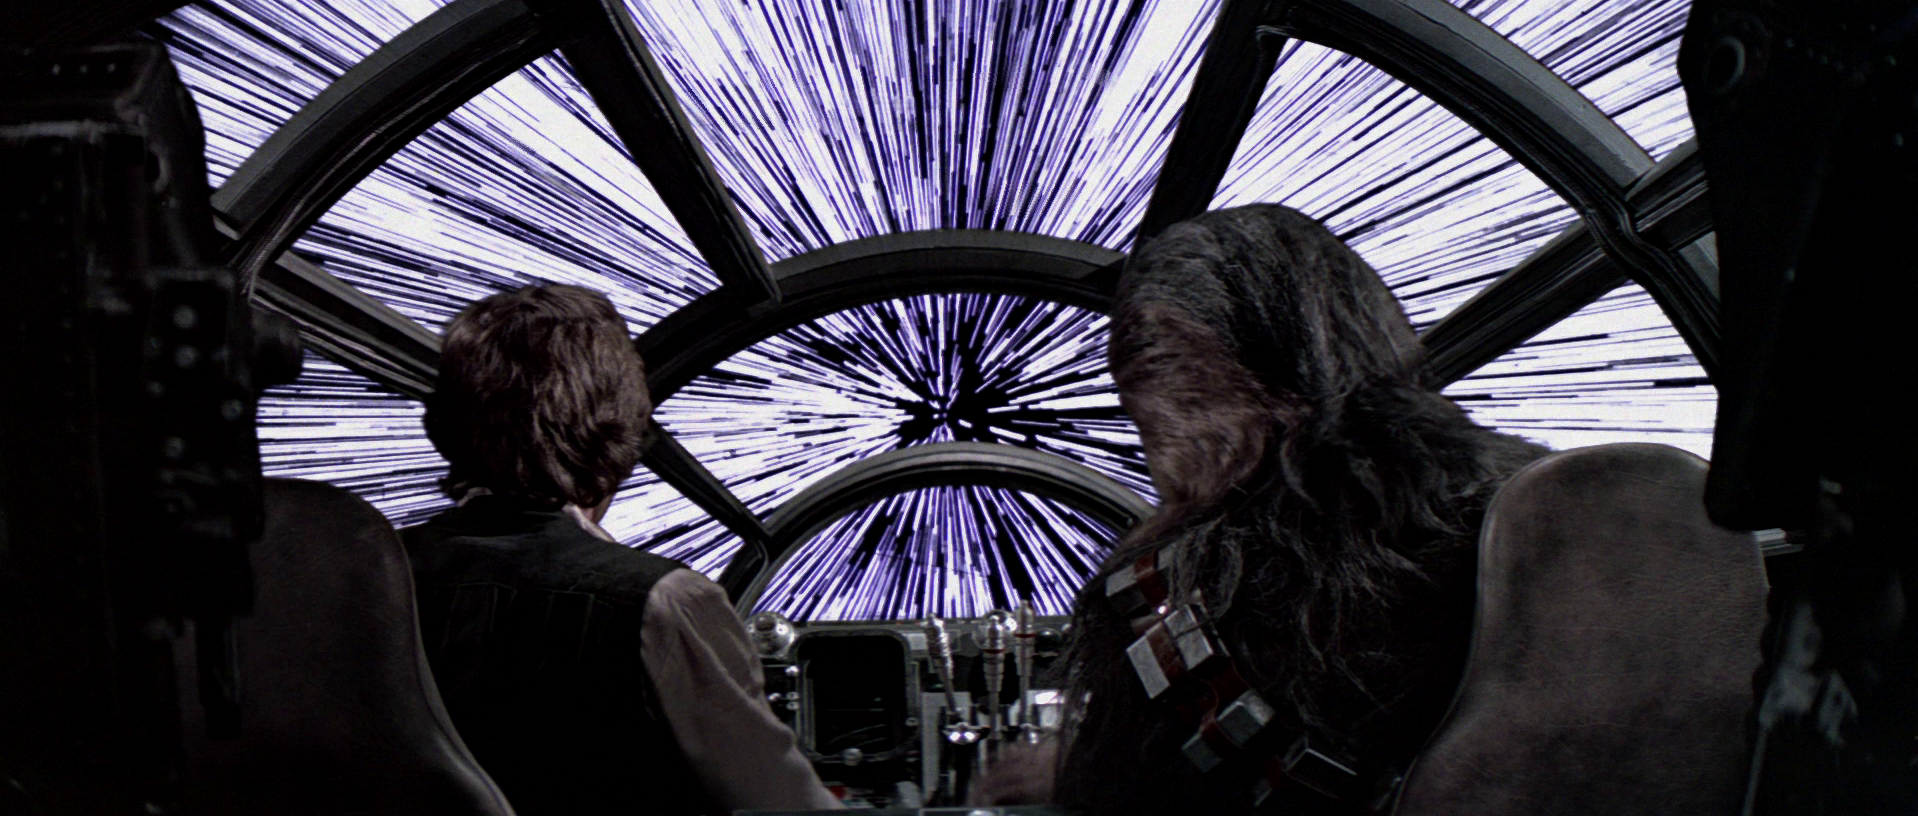 The Millennium Falcon going into lightspeed